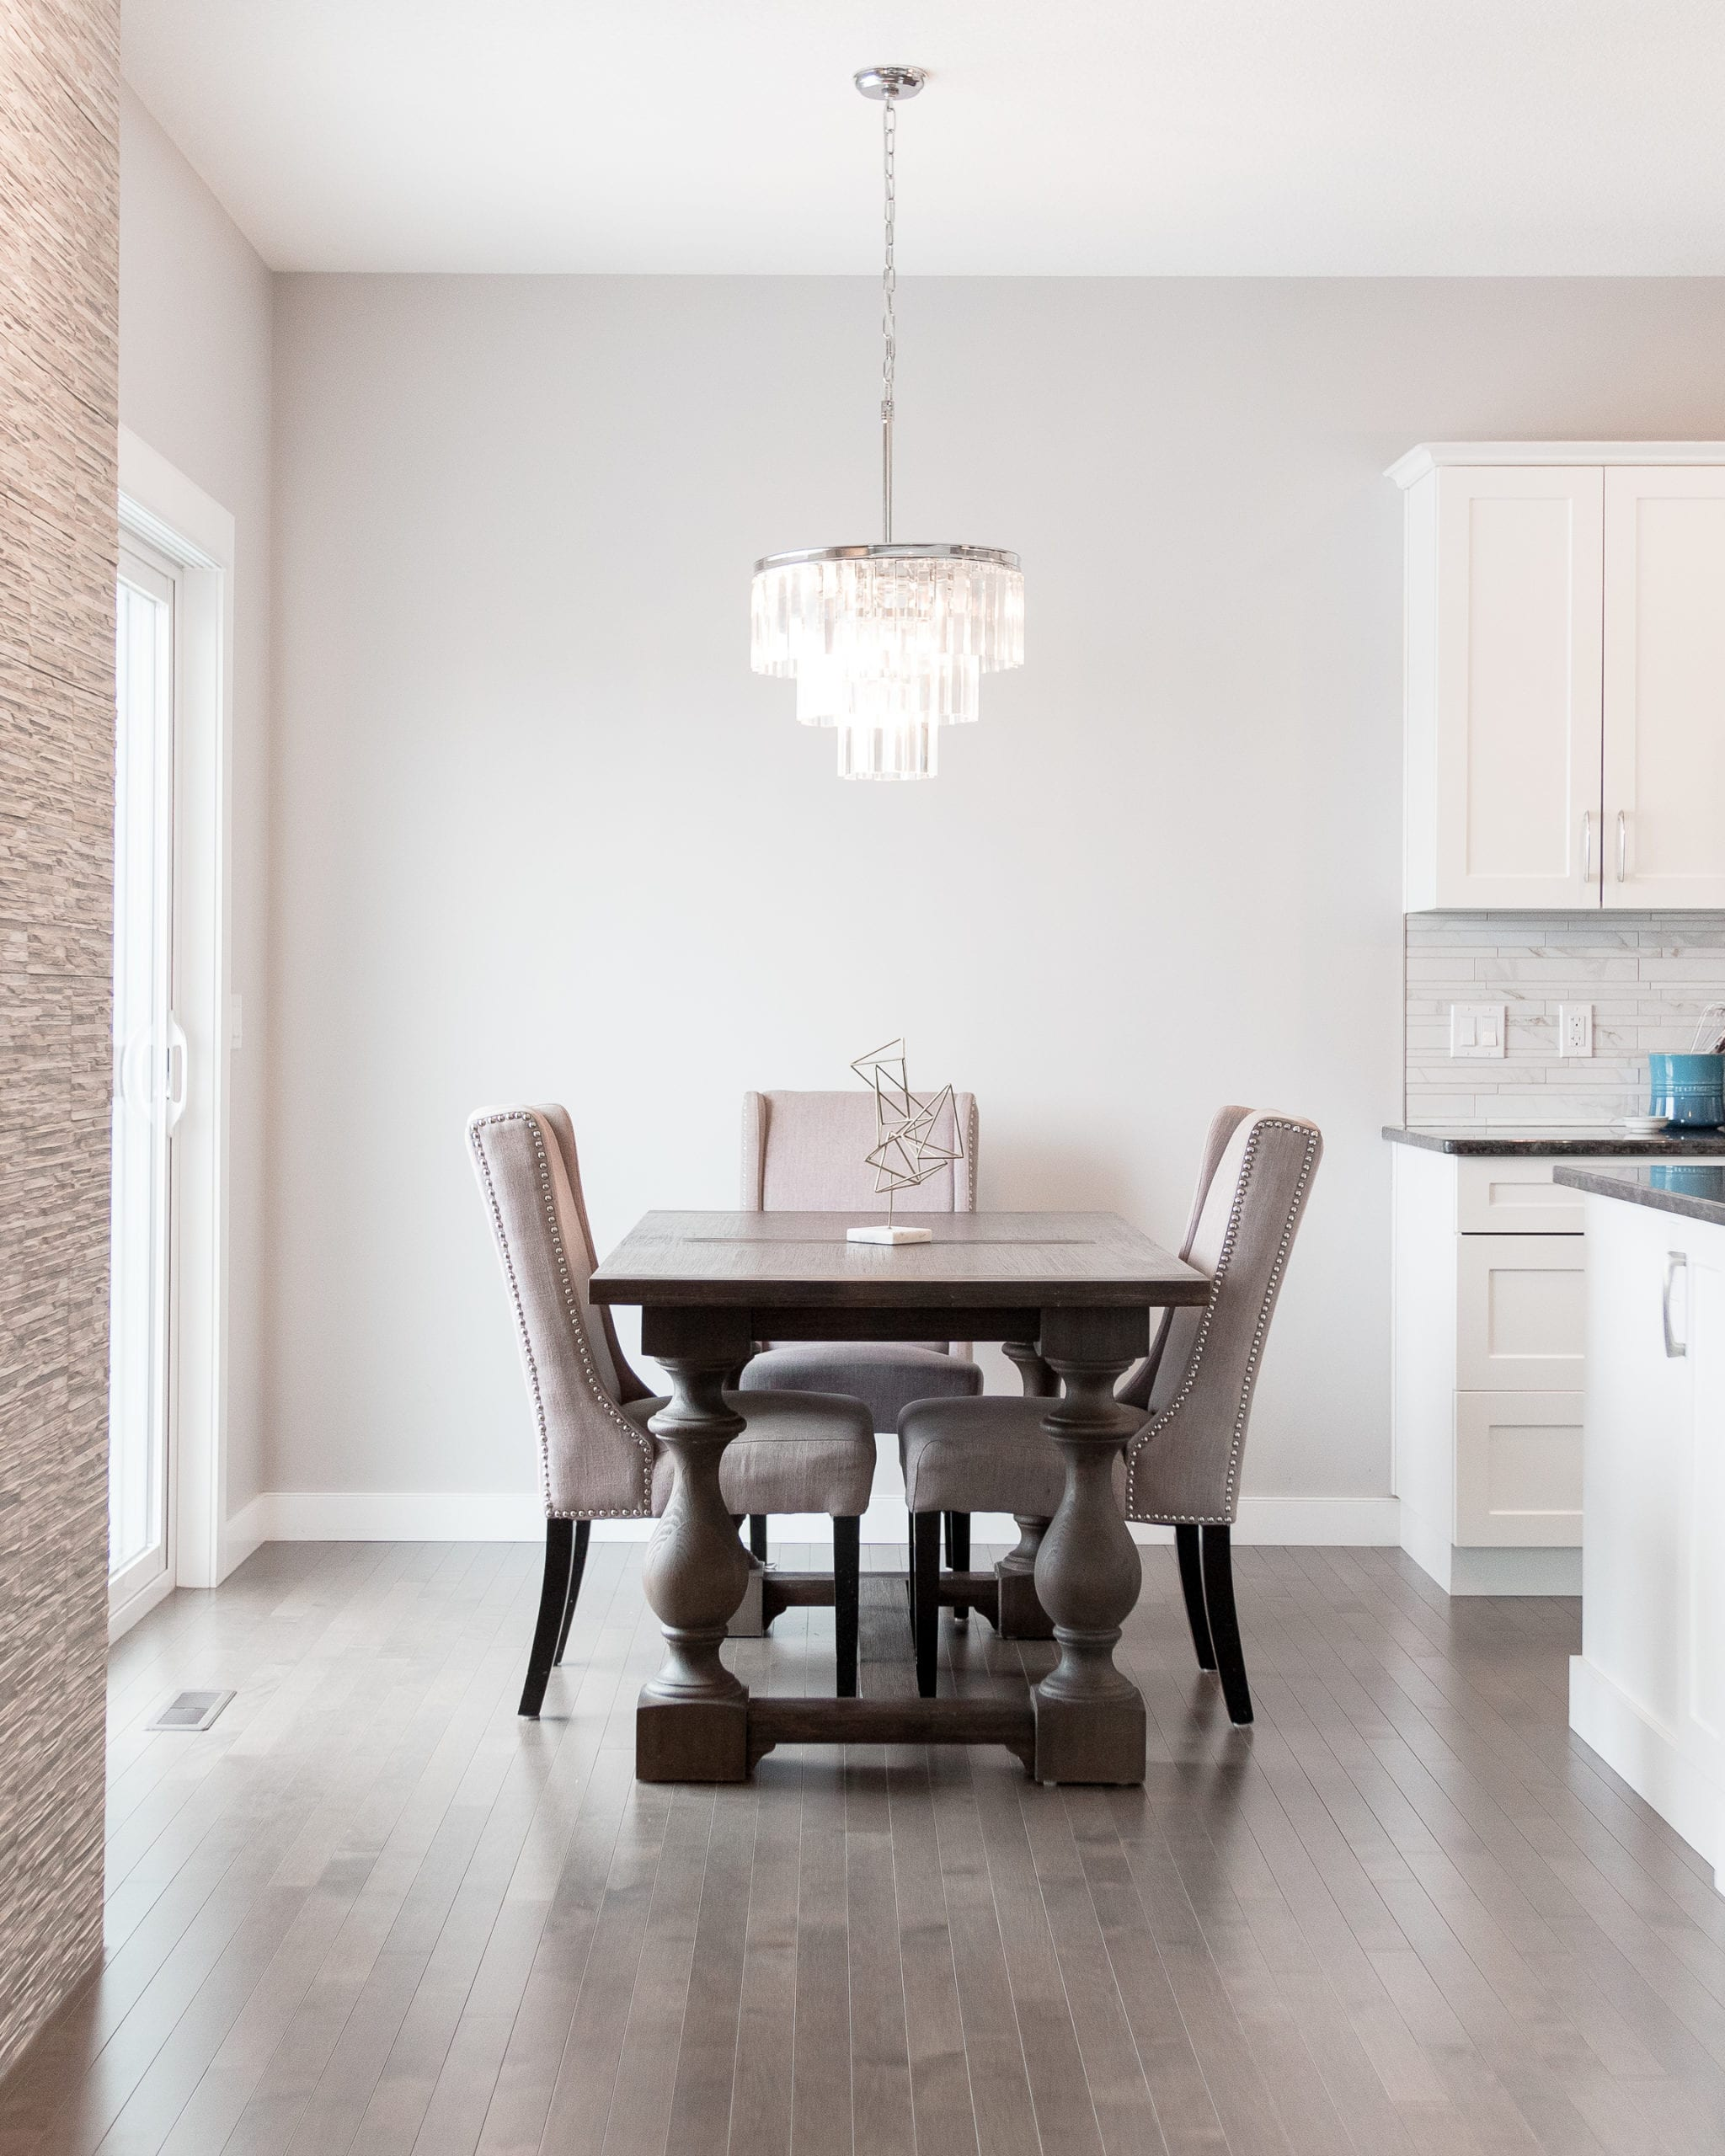 Hello Gorgeous - 1306 Kings Heights Way SE, Airdrie AB. - Tara Molina Real Estate (11 of 53)